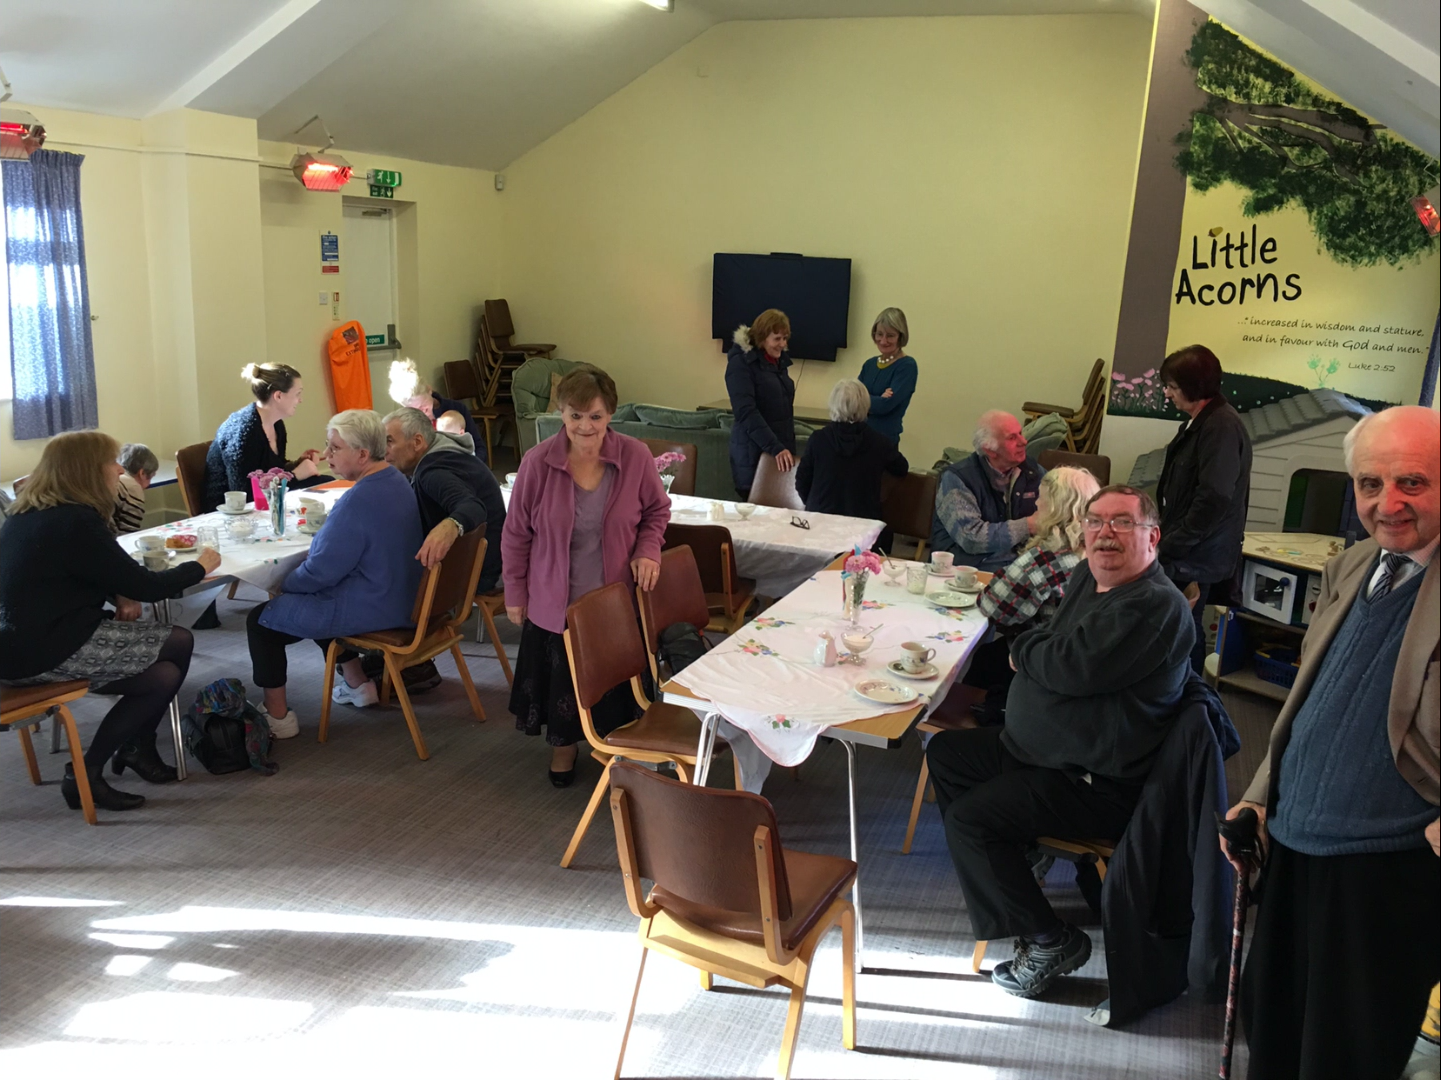 Good fellowship and a super opportunity to 'chillax'! (Lovely cakes and sausage rolls too!!)